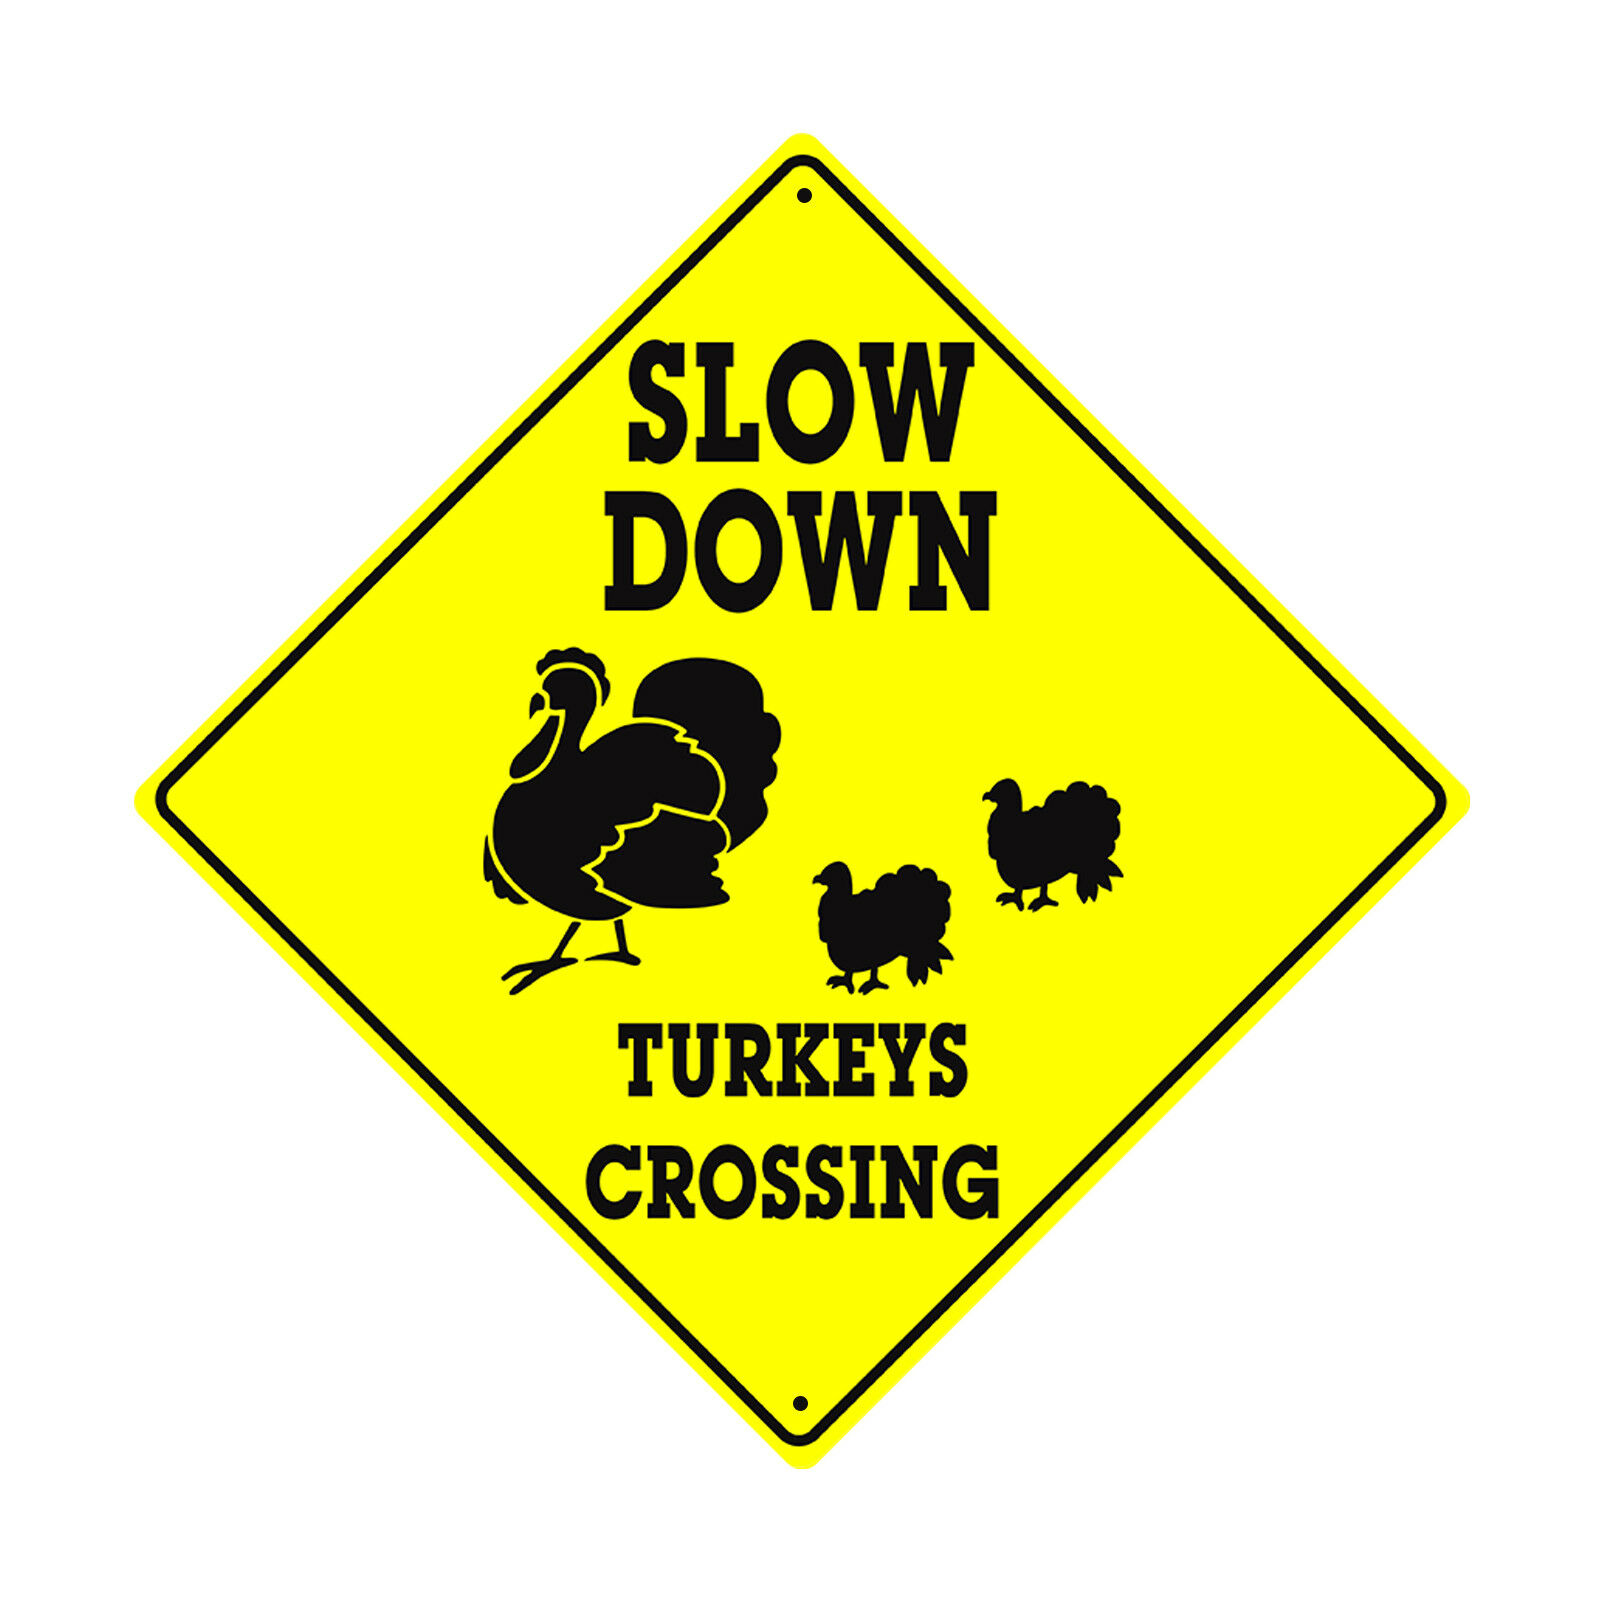 Slow Turtle Crossing Funny Novelty Wall Decor Gift Aluminum Metal Sign